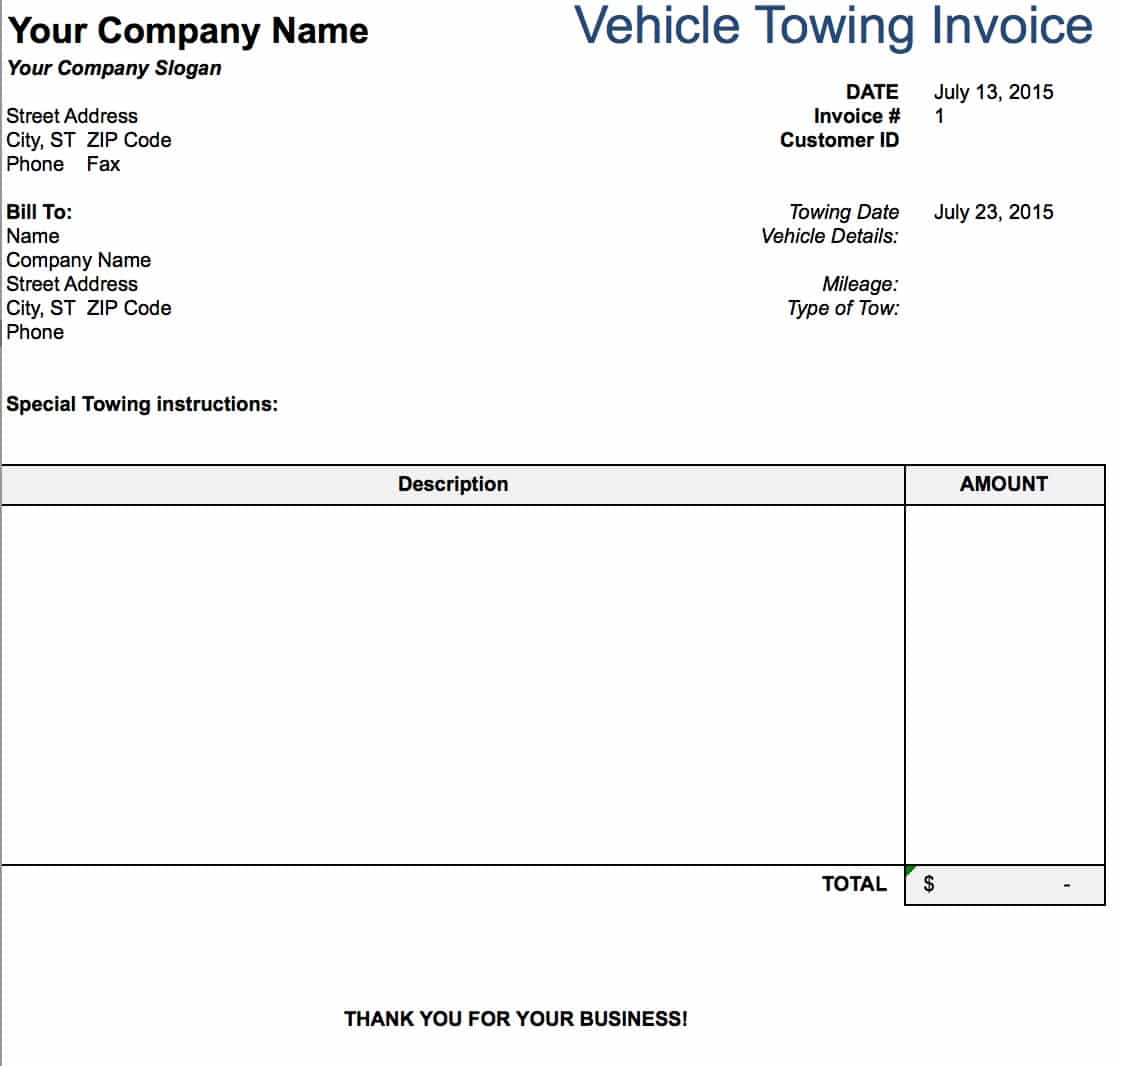 Free Tow Service Invoice Template Excel PDF Word Doc - How do i create an invoice for service business